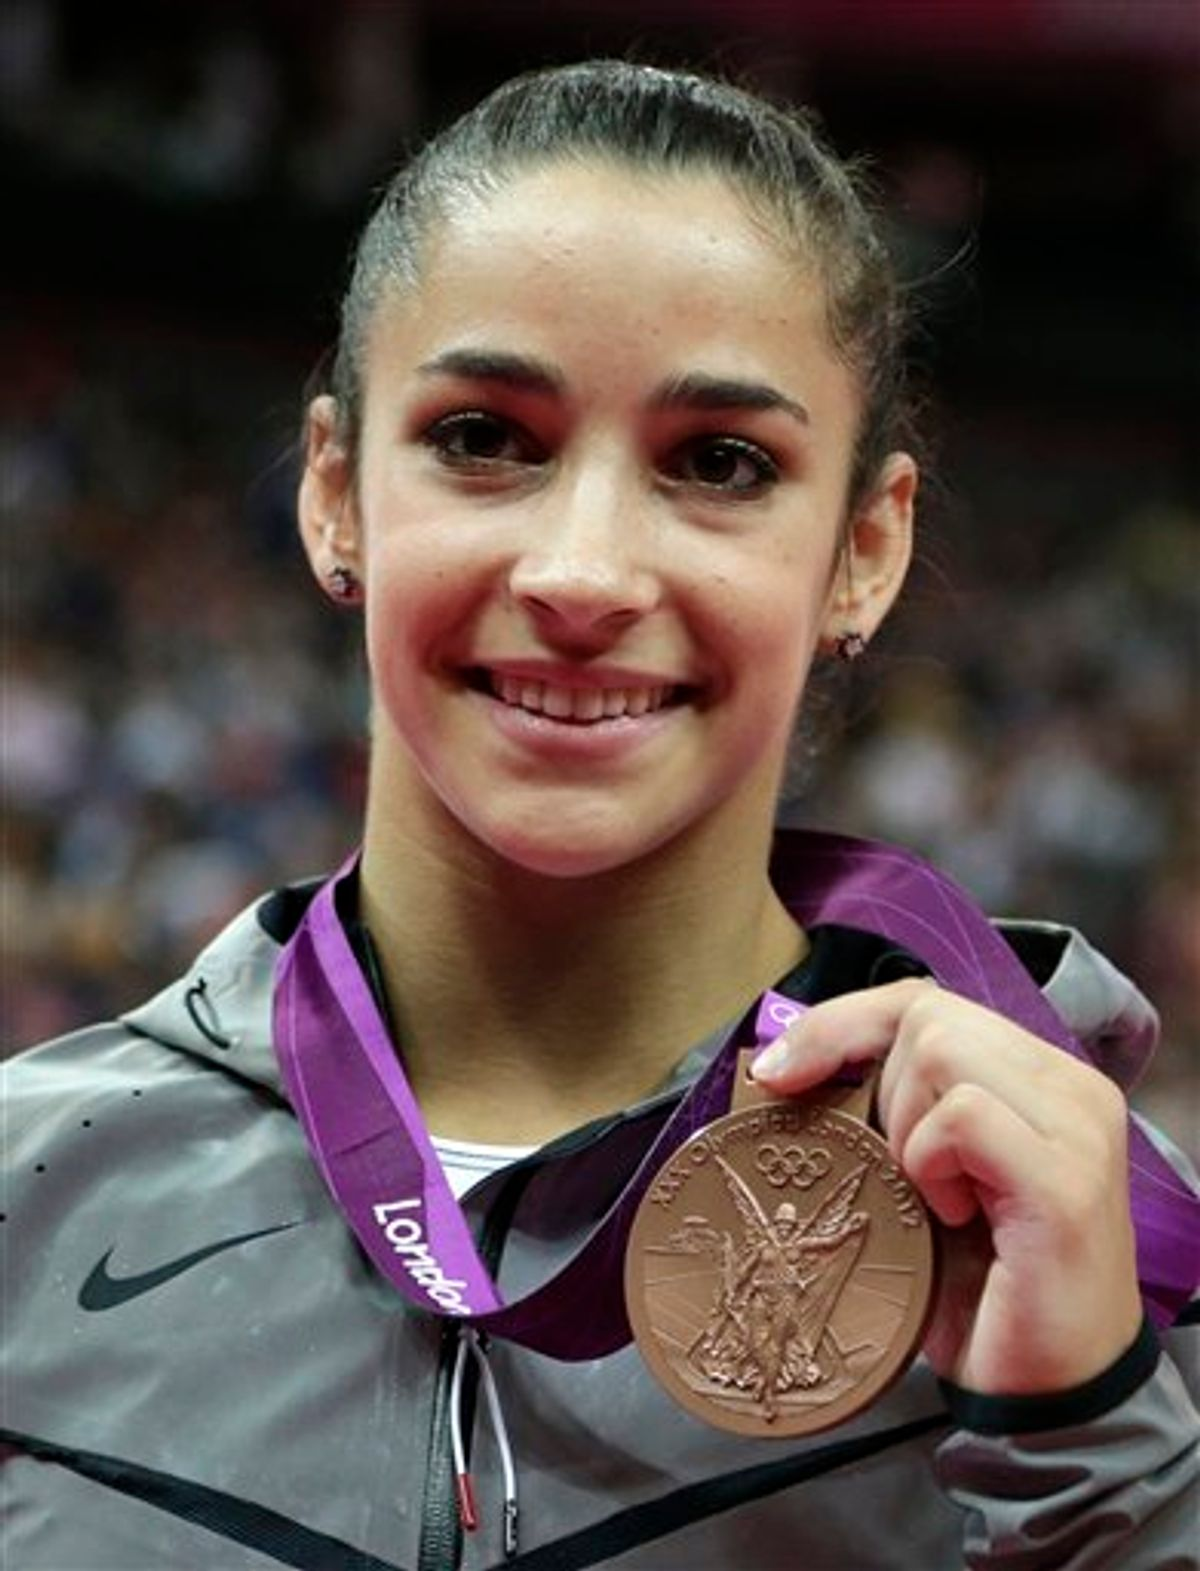 U.S. gymnast Alexandra Raisman displays her bronze medal for the balance beam during the artistic gymnastics women's apparatus finals at the 2012 Summer Olympics, Tuesday, Aug. 7, 2012, in London. (AP Photo/Gregory Bull)    (AP)